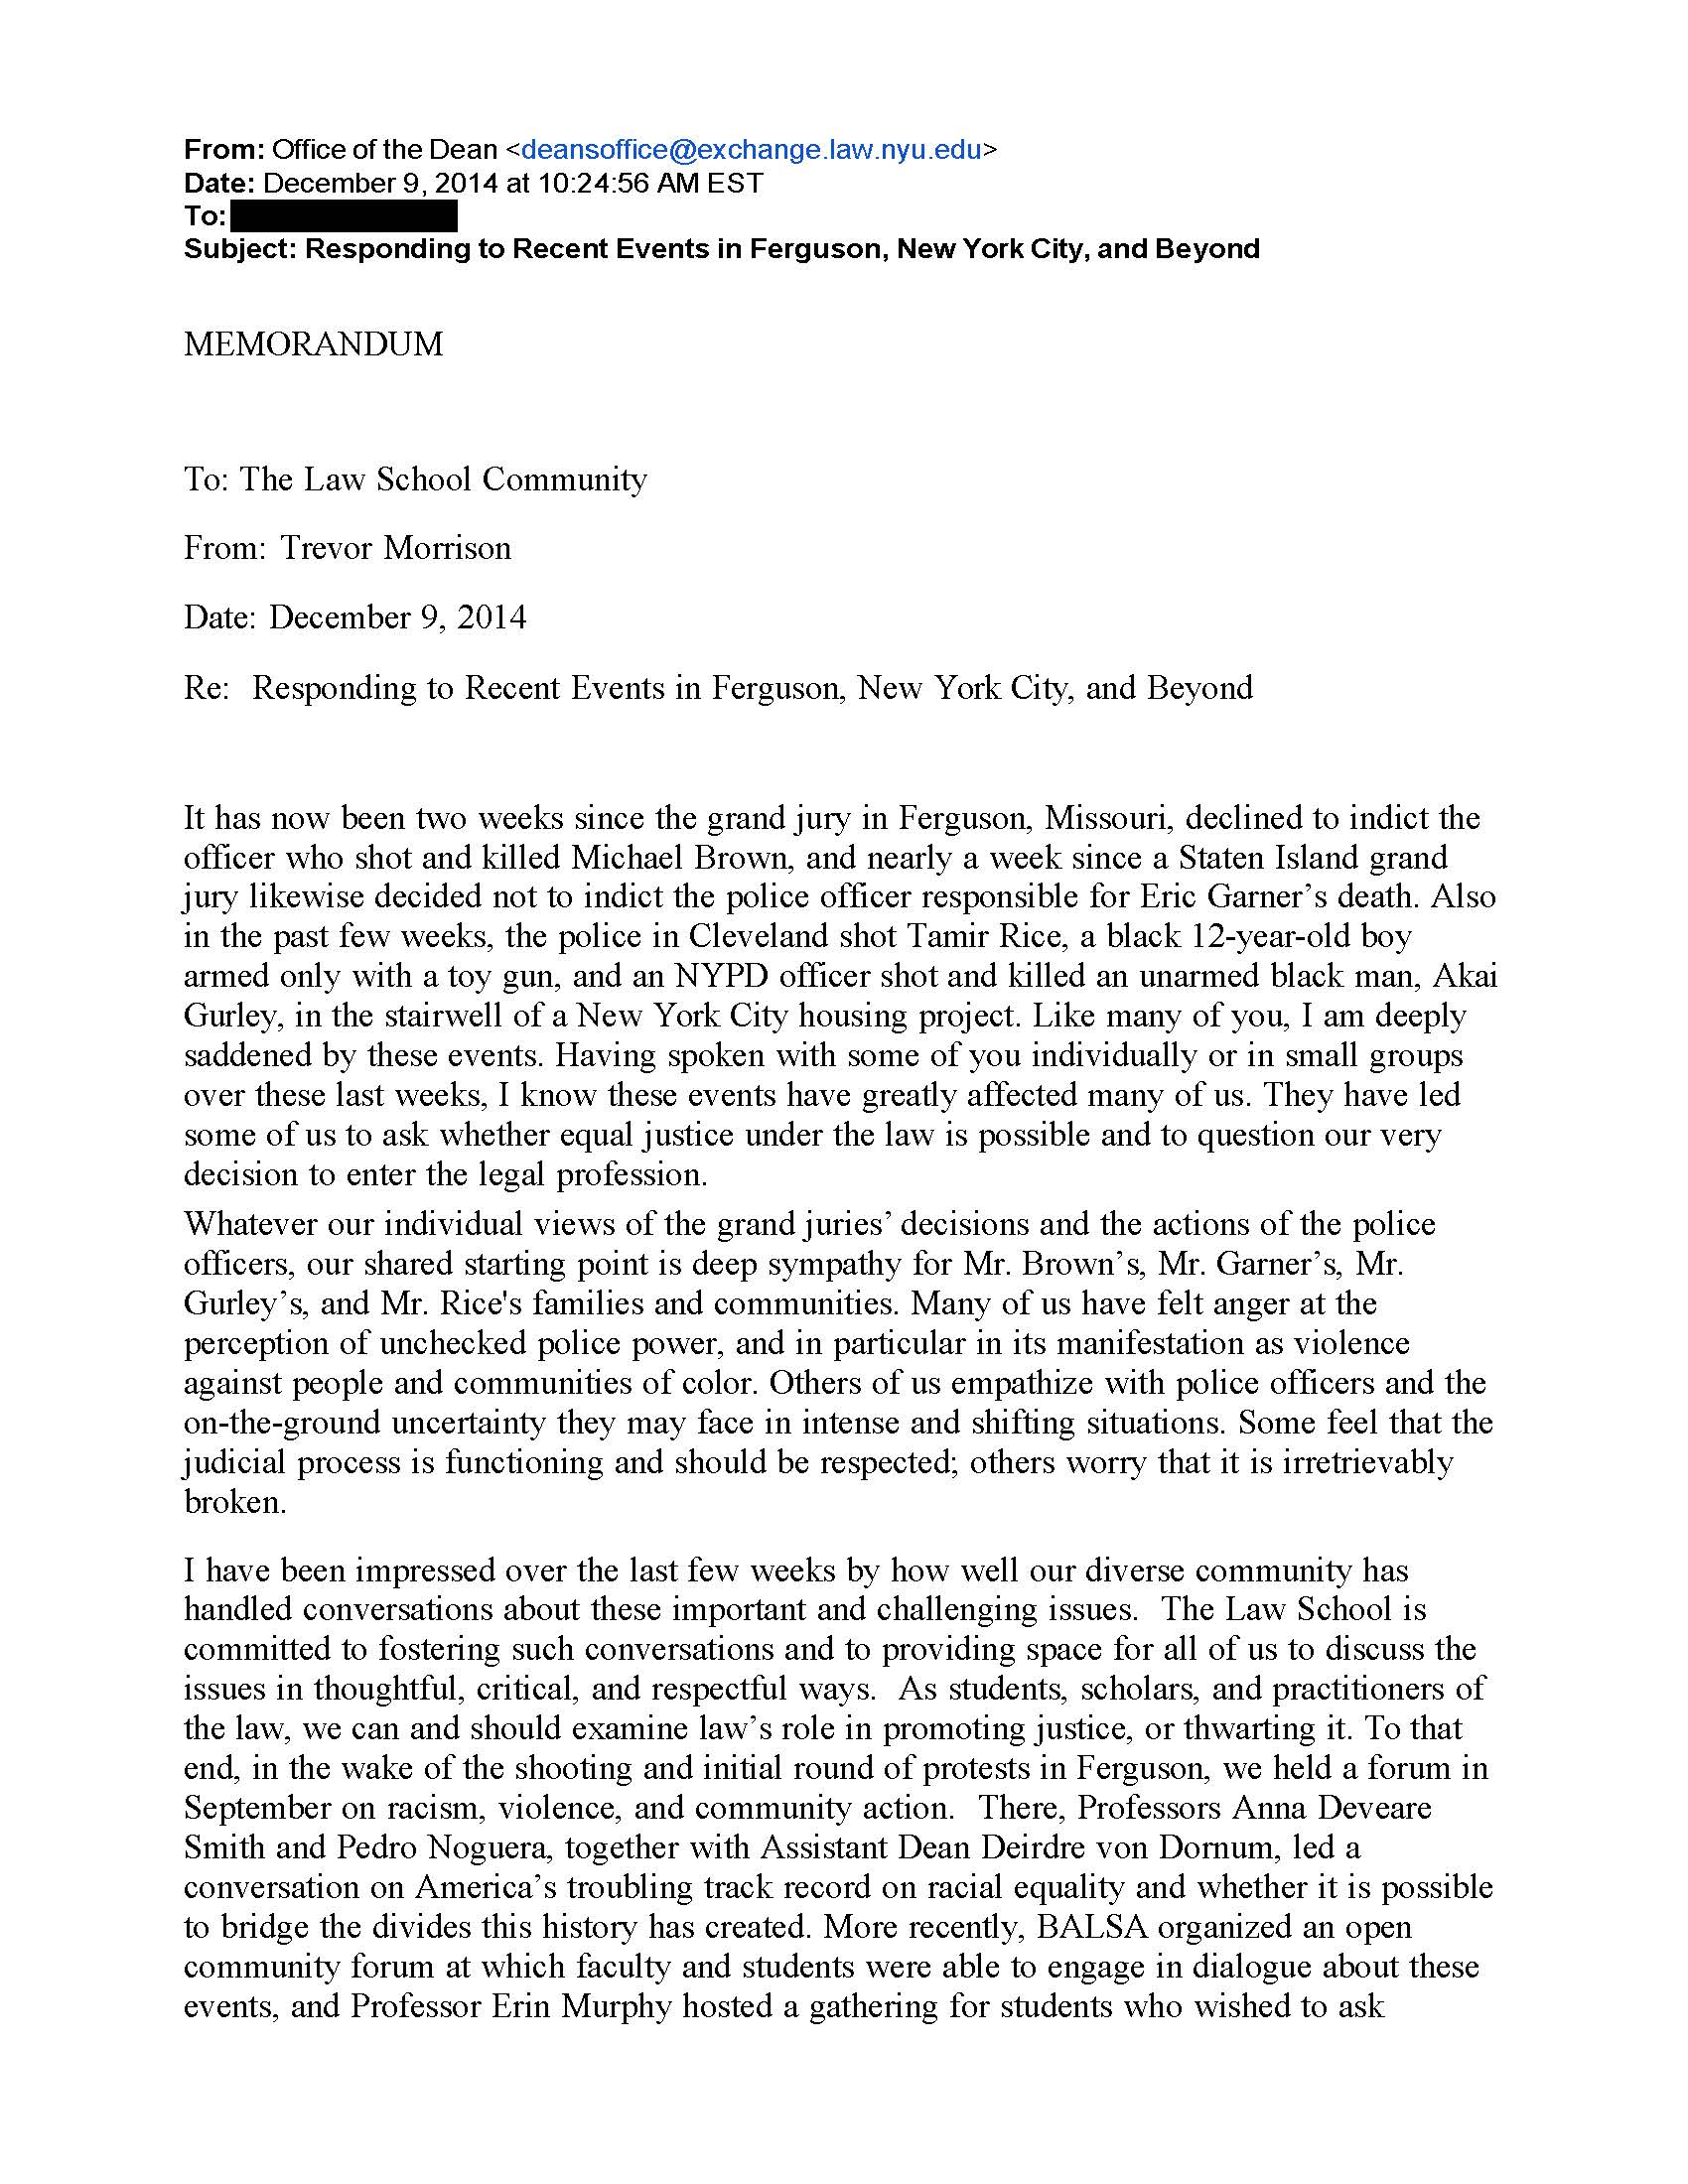 001 Why Nyu Essay Example Response 14 Page 1 Unforgettable 2018 Stern Reddit Full